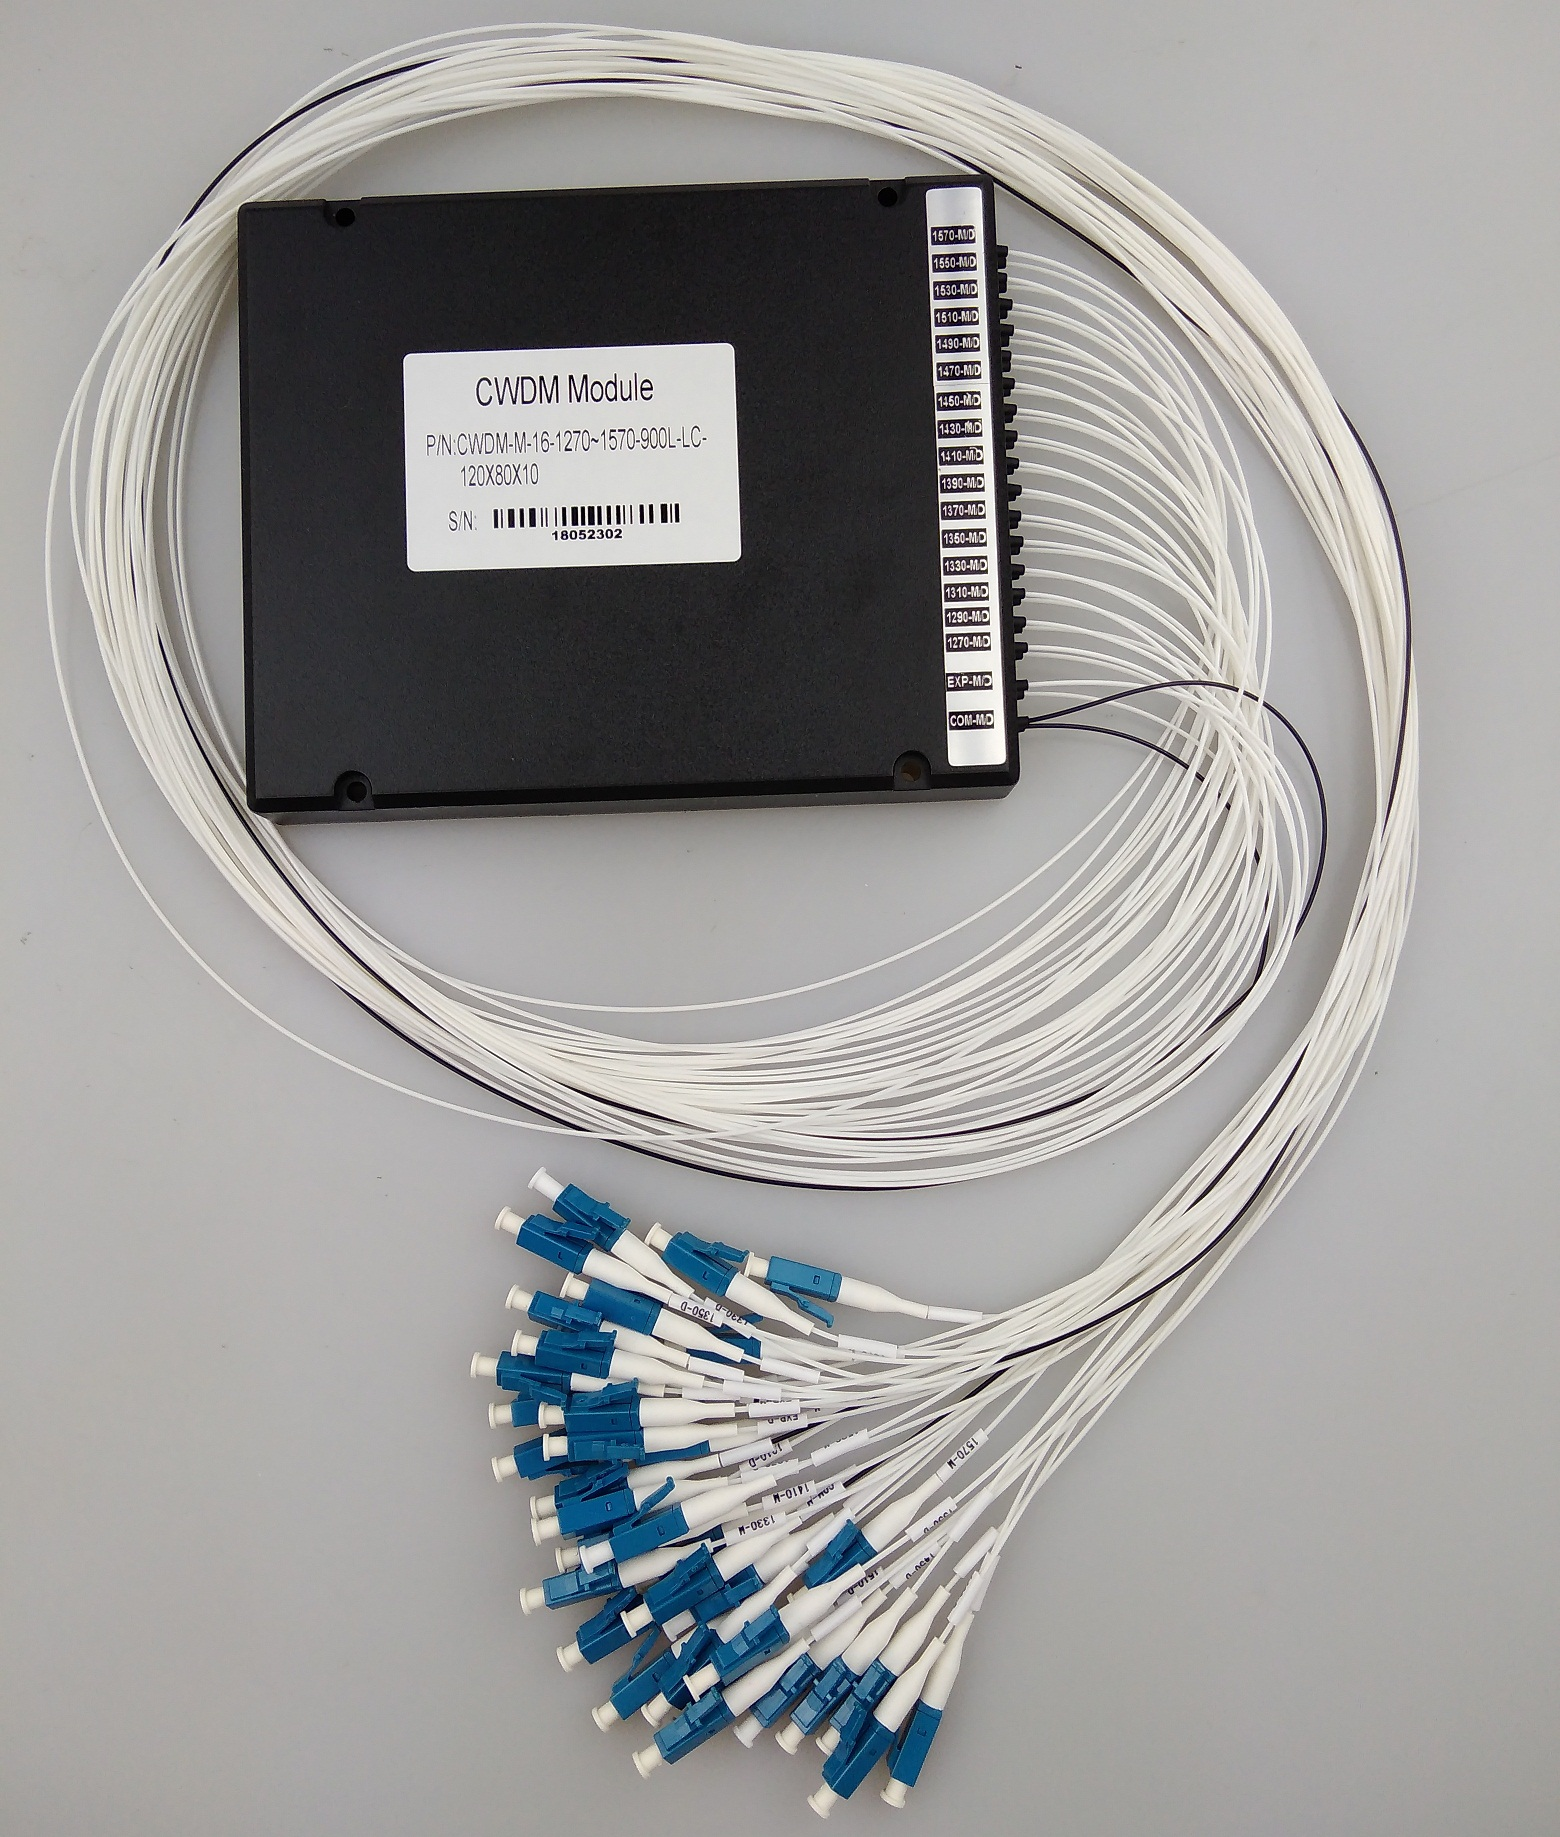 16 channel cwdm fiber mux demux with LC connector